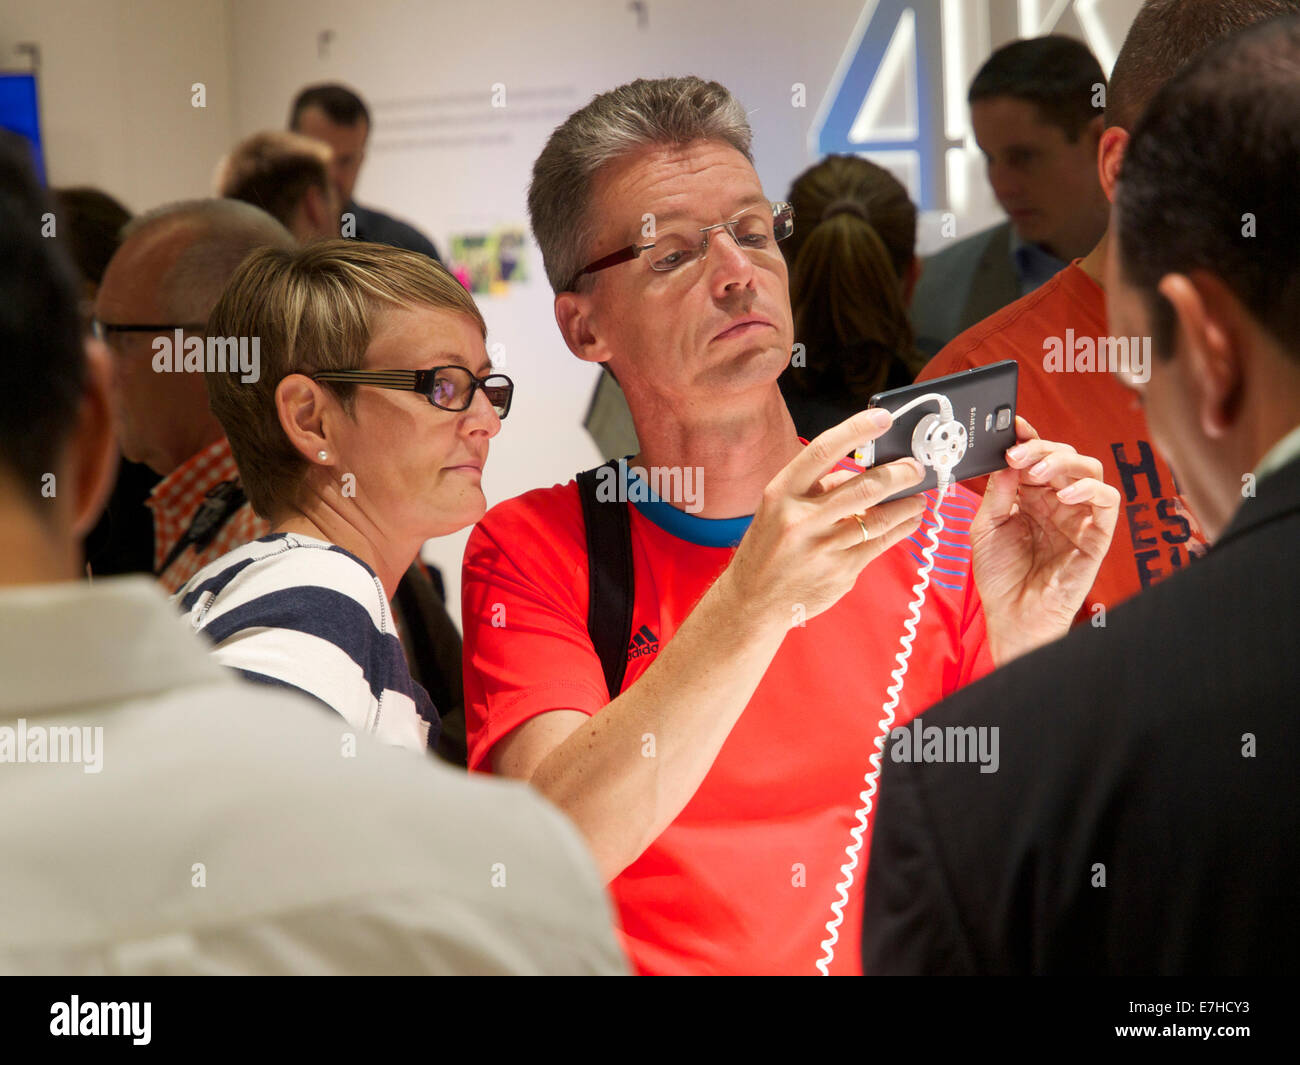 Couple looking at the latest Samsung smartphone at the 2014